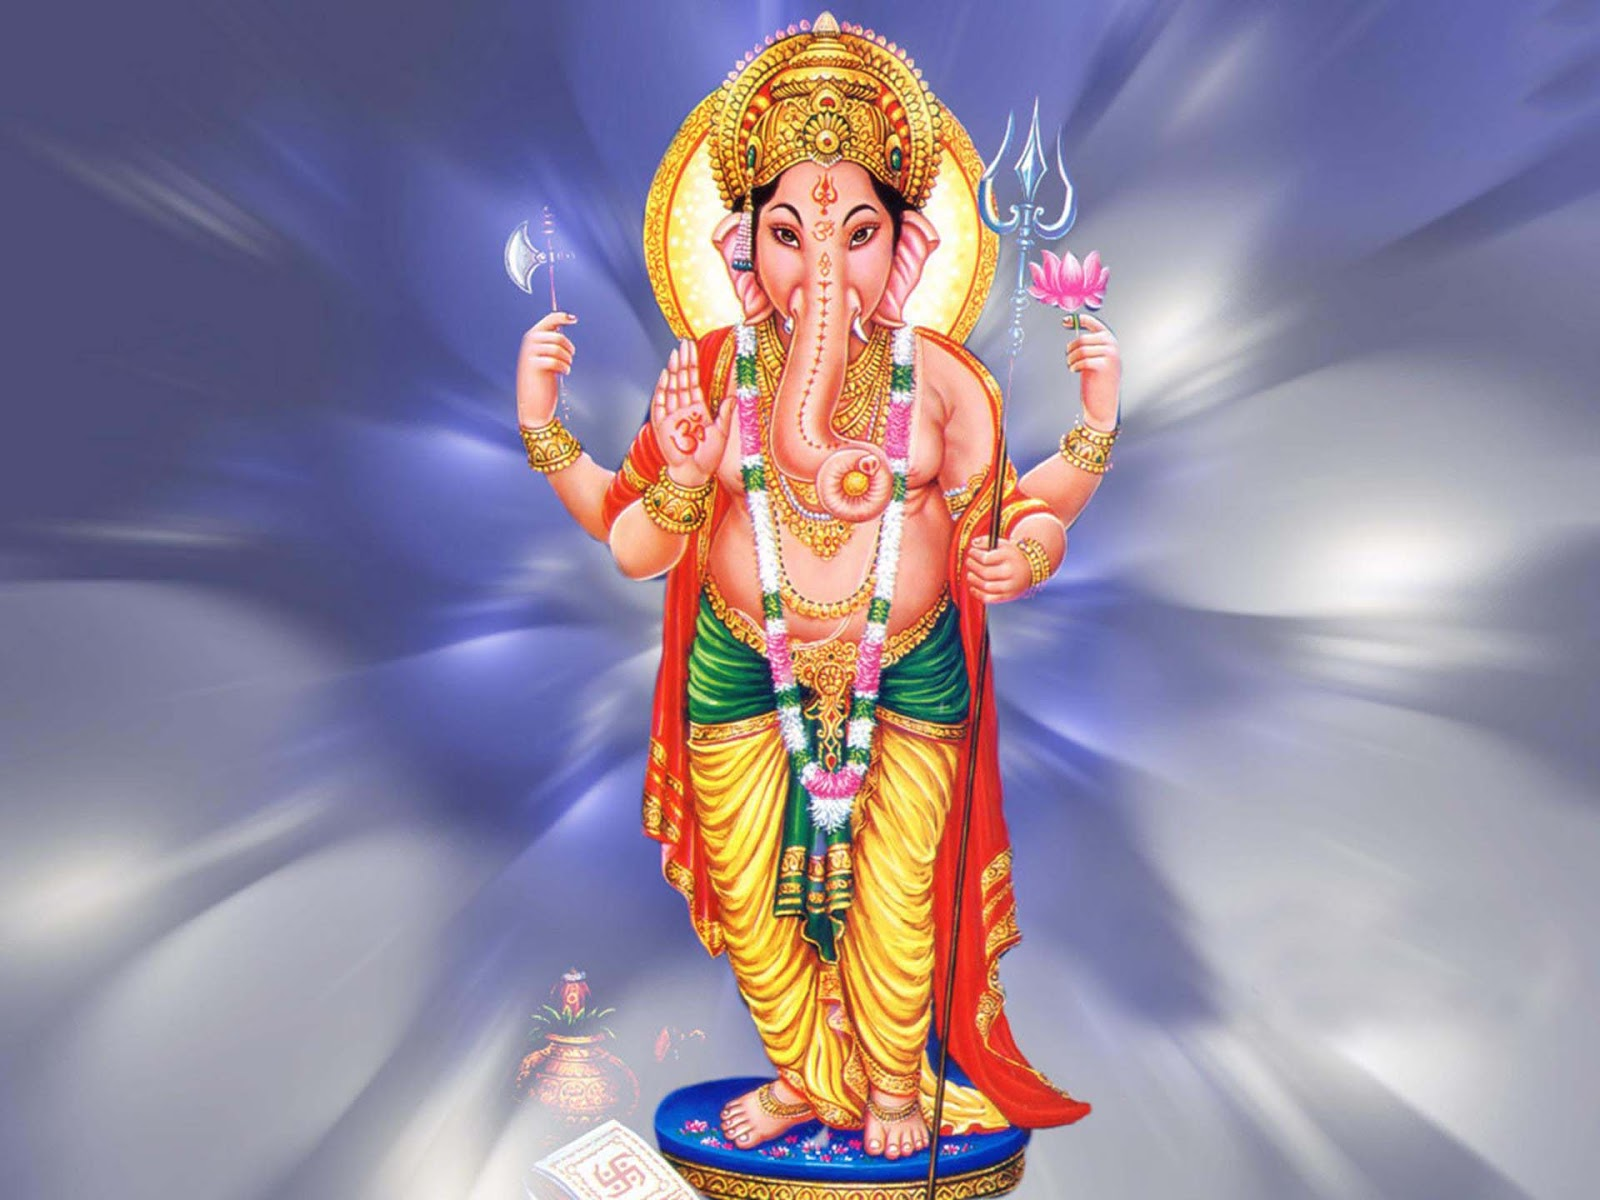 2018 shri ganesh wallpaper hd best 2018 collection festivals on web